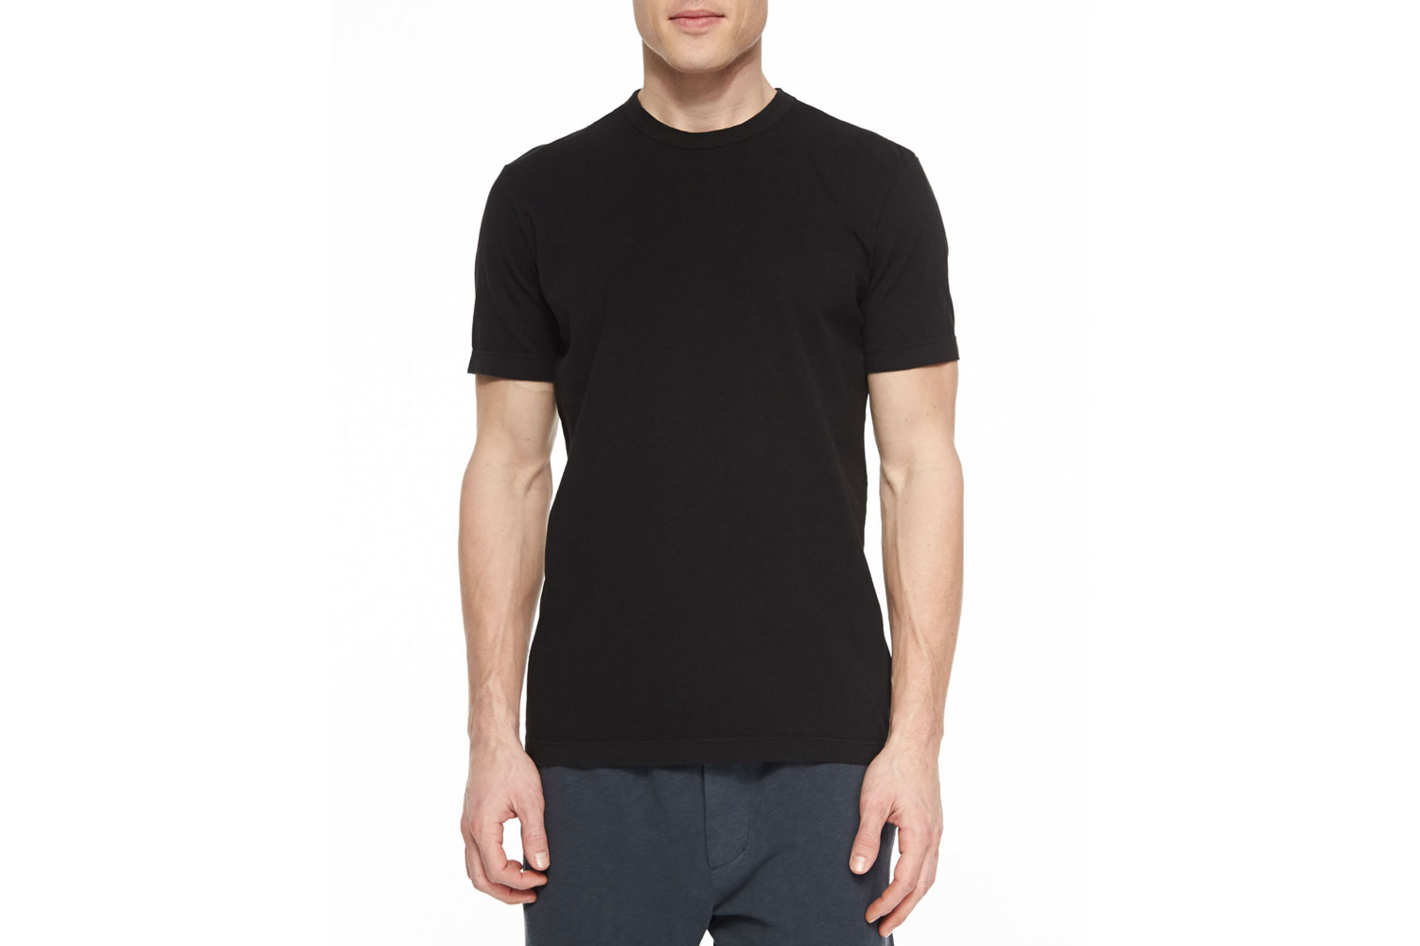 Black Shirts: Makes you stylish and stunning